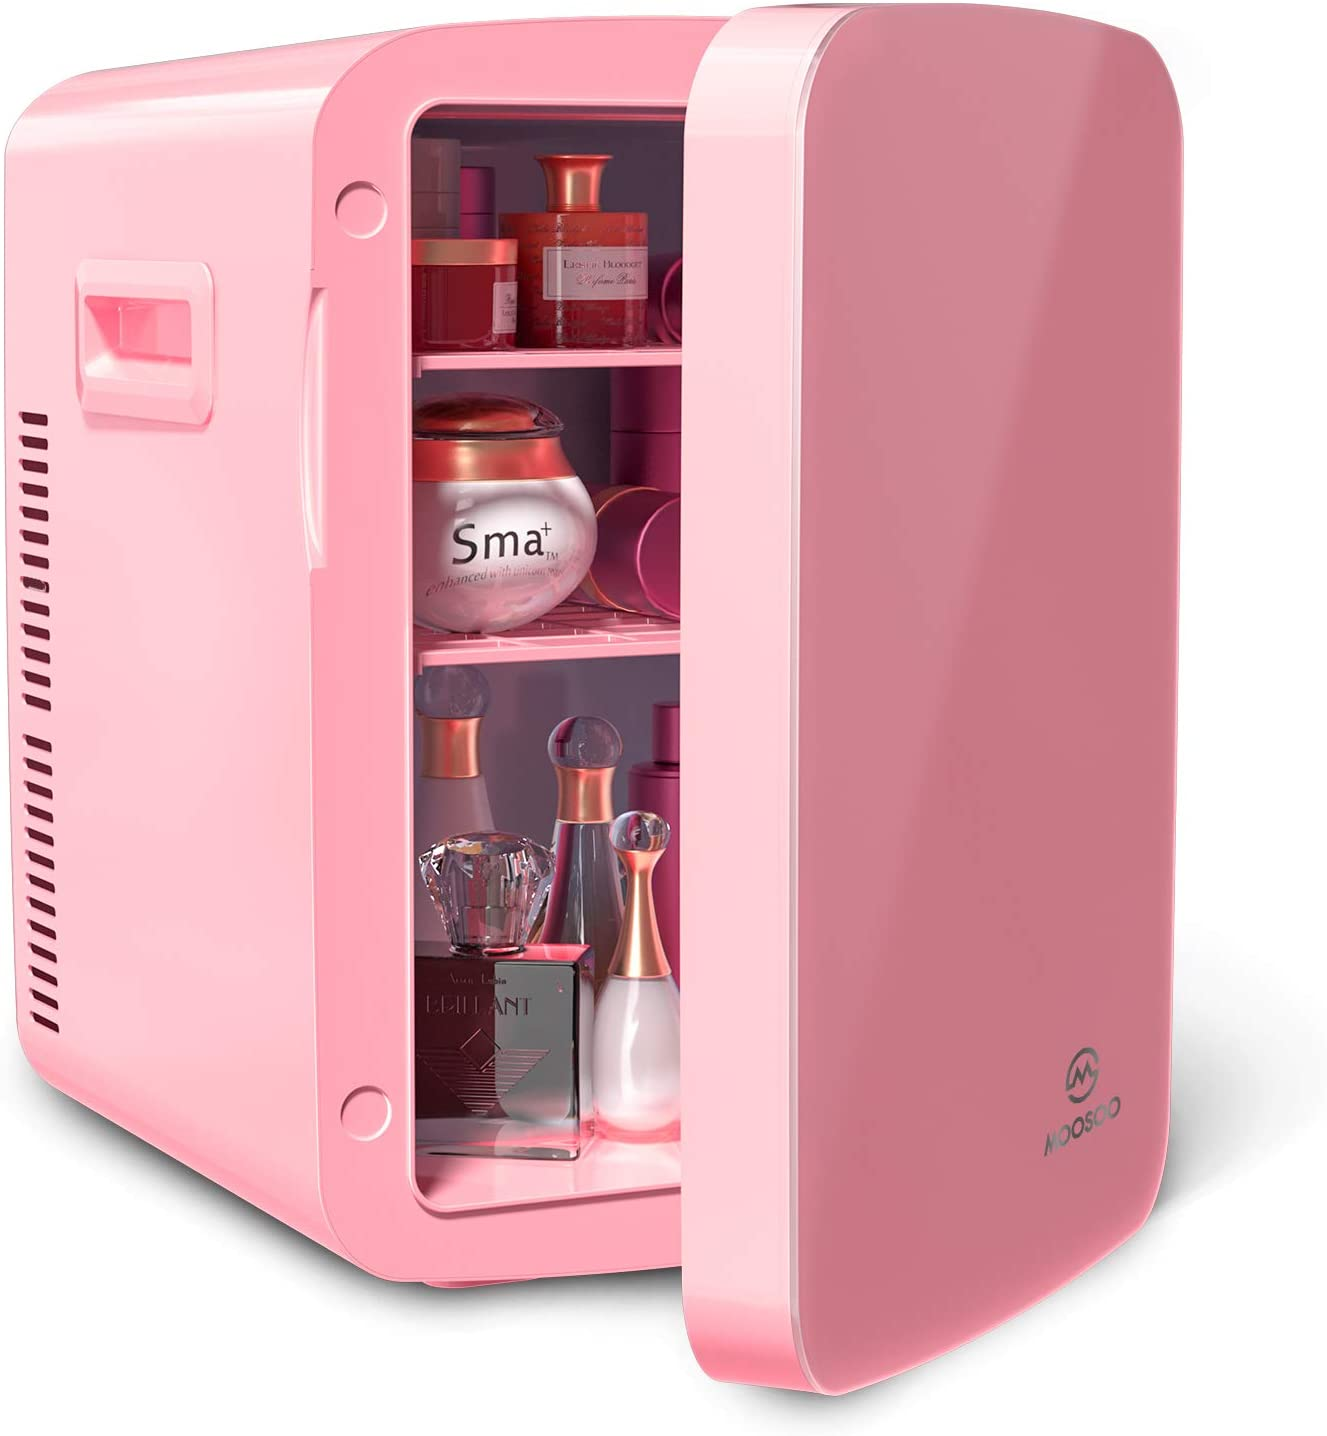 Mini Fridge 15 Liter, MOOSOO Portable Small Fridge with AC & DC Power, Use for Home & Car, Heat and Cool Dual Mode, Provides Compact Storage for Skincare, Snacks, Drinks, 18 12oz Cans, Desktop Fridge